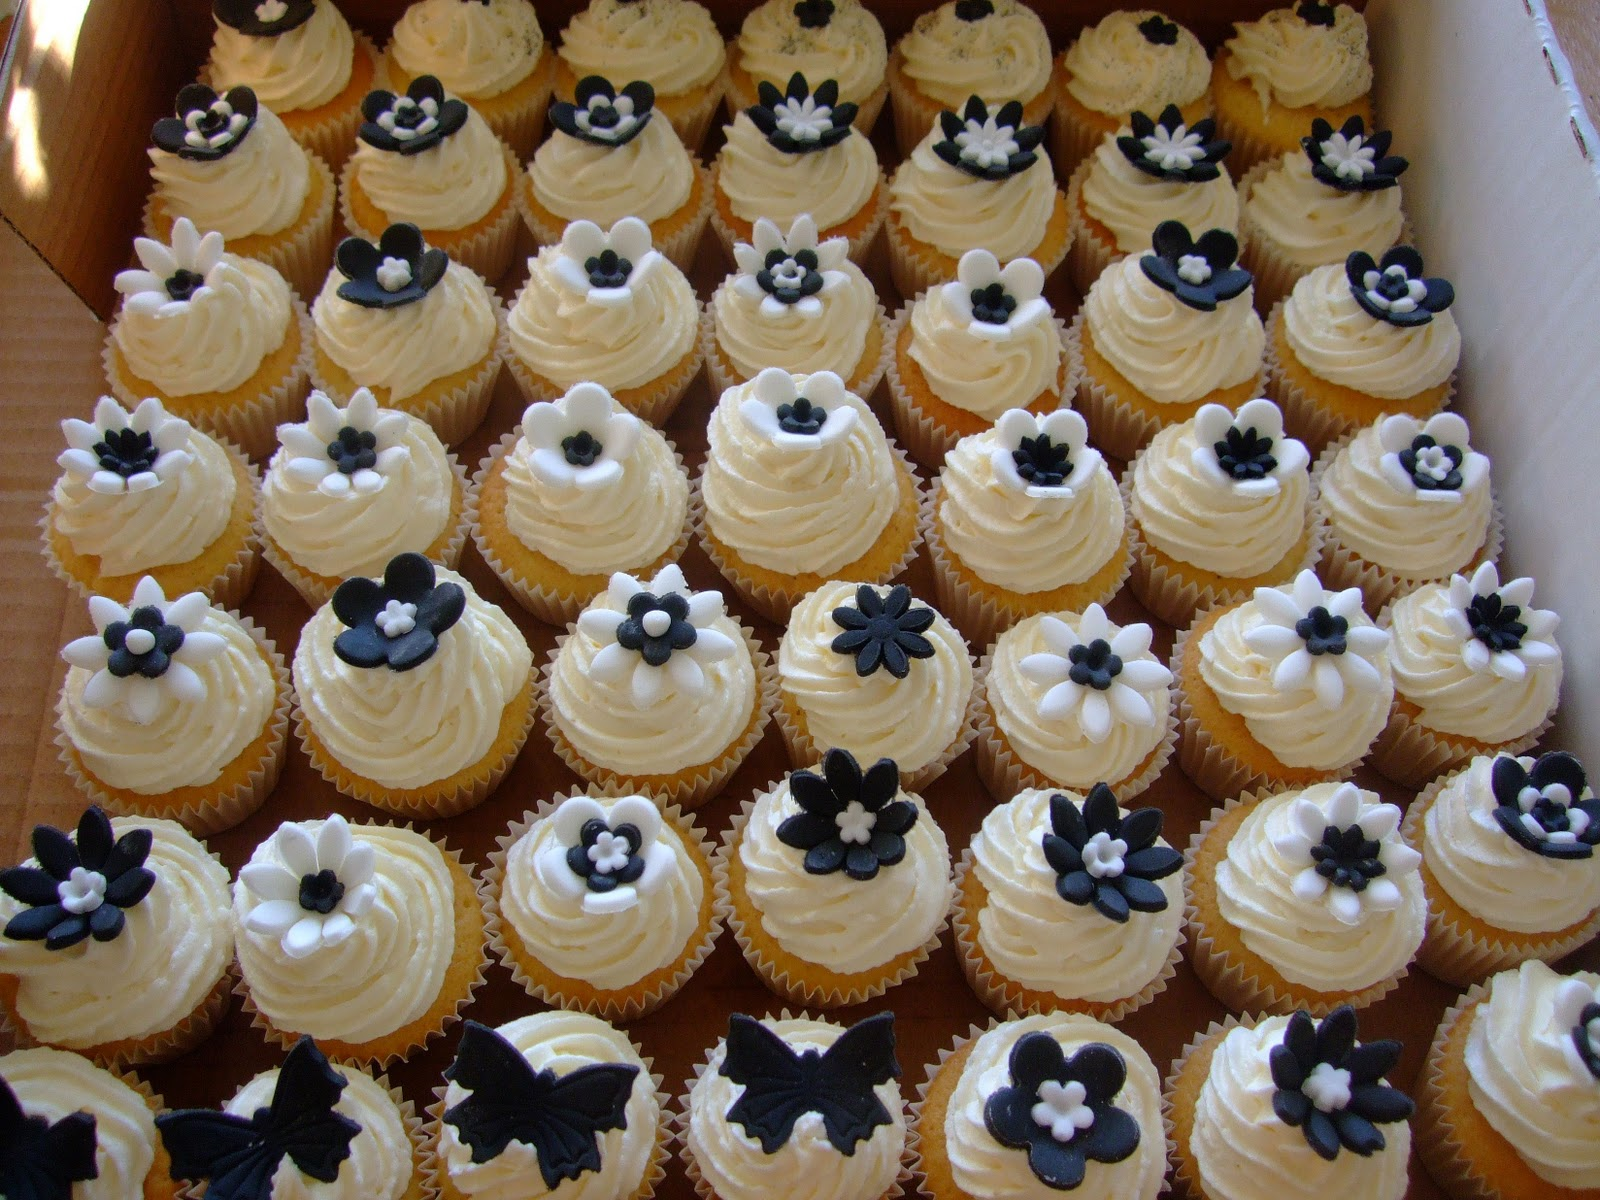 Colourful Cupcakes of Newbury: Black and White Party Cupcakes